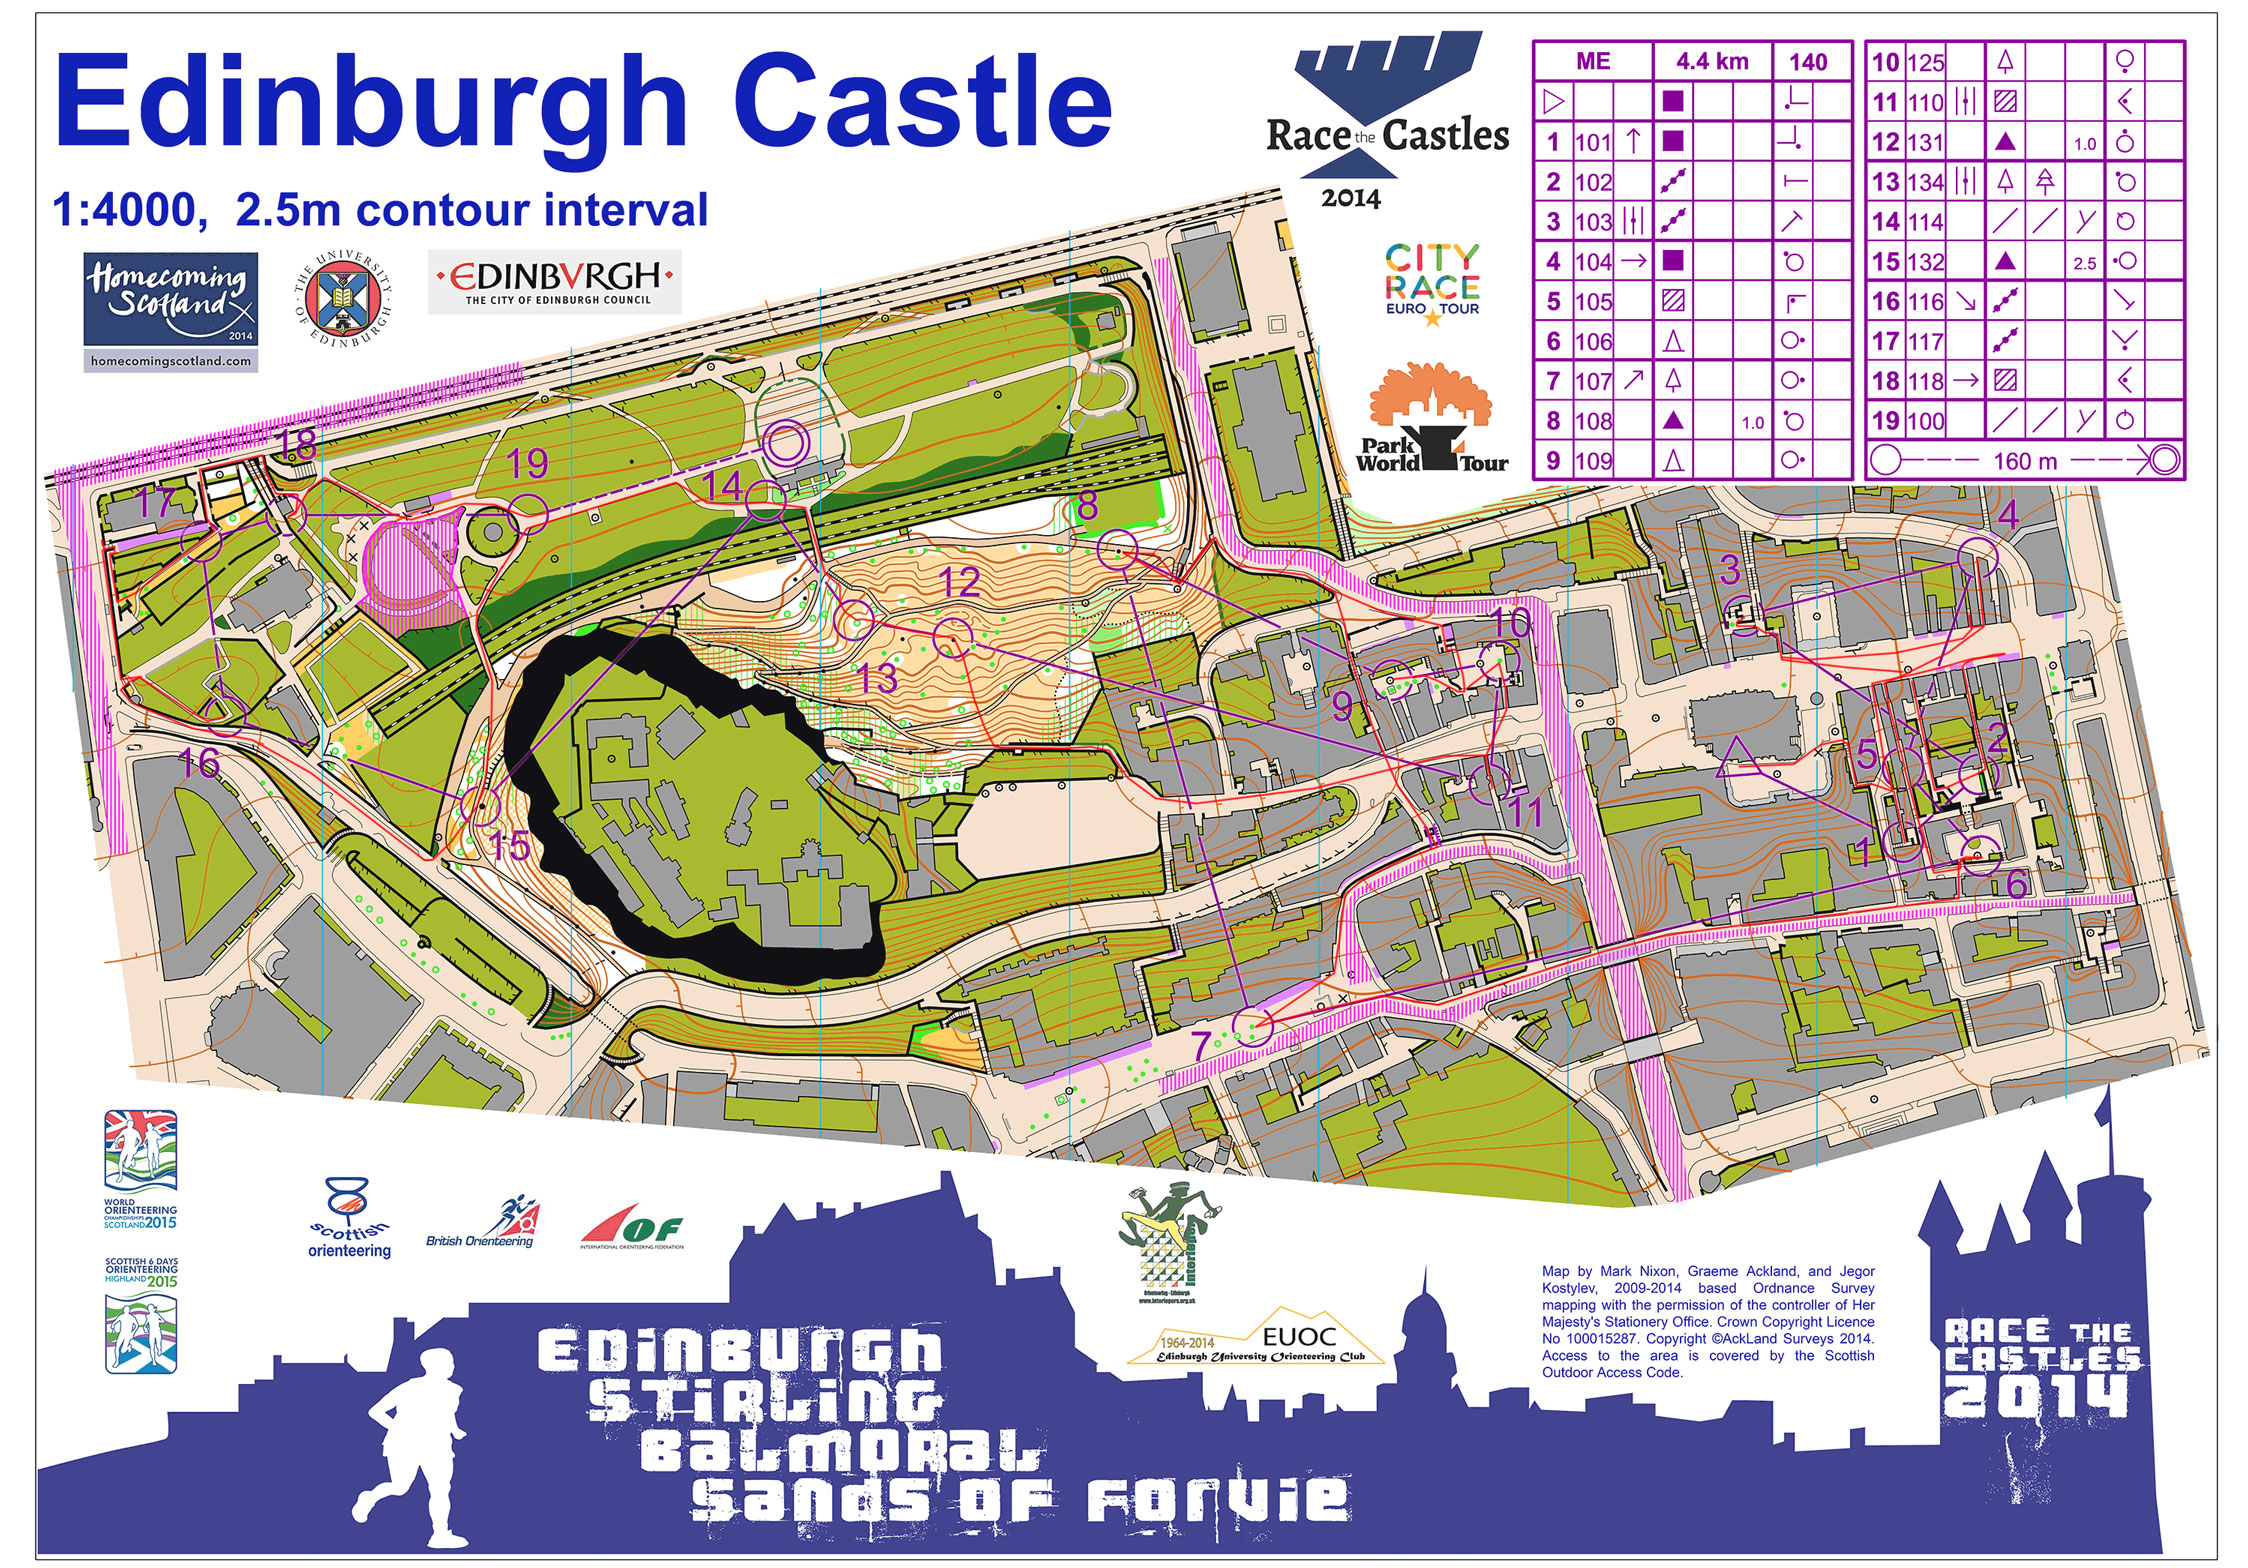 Orienteering Map Archive Race the Castles Edinburgh 11102014